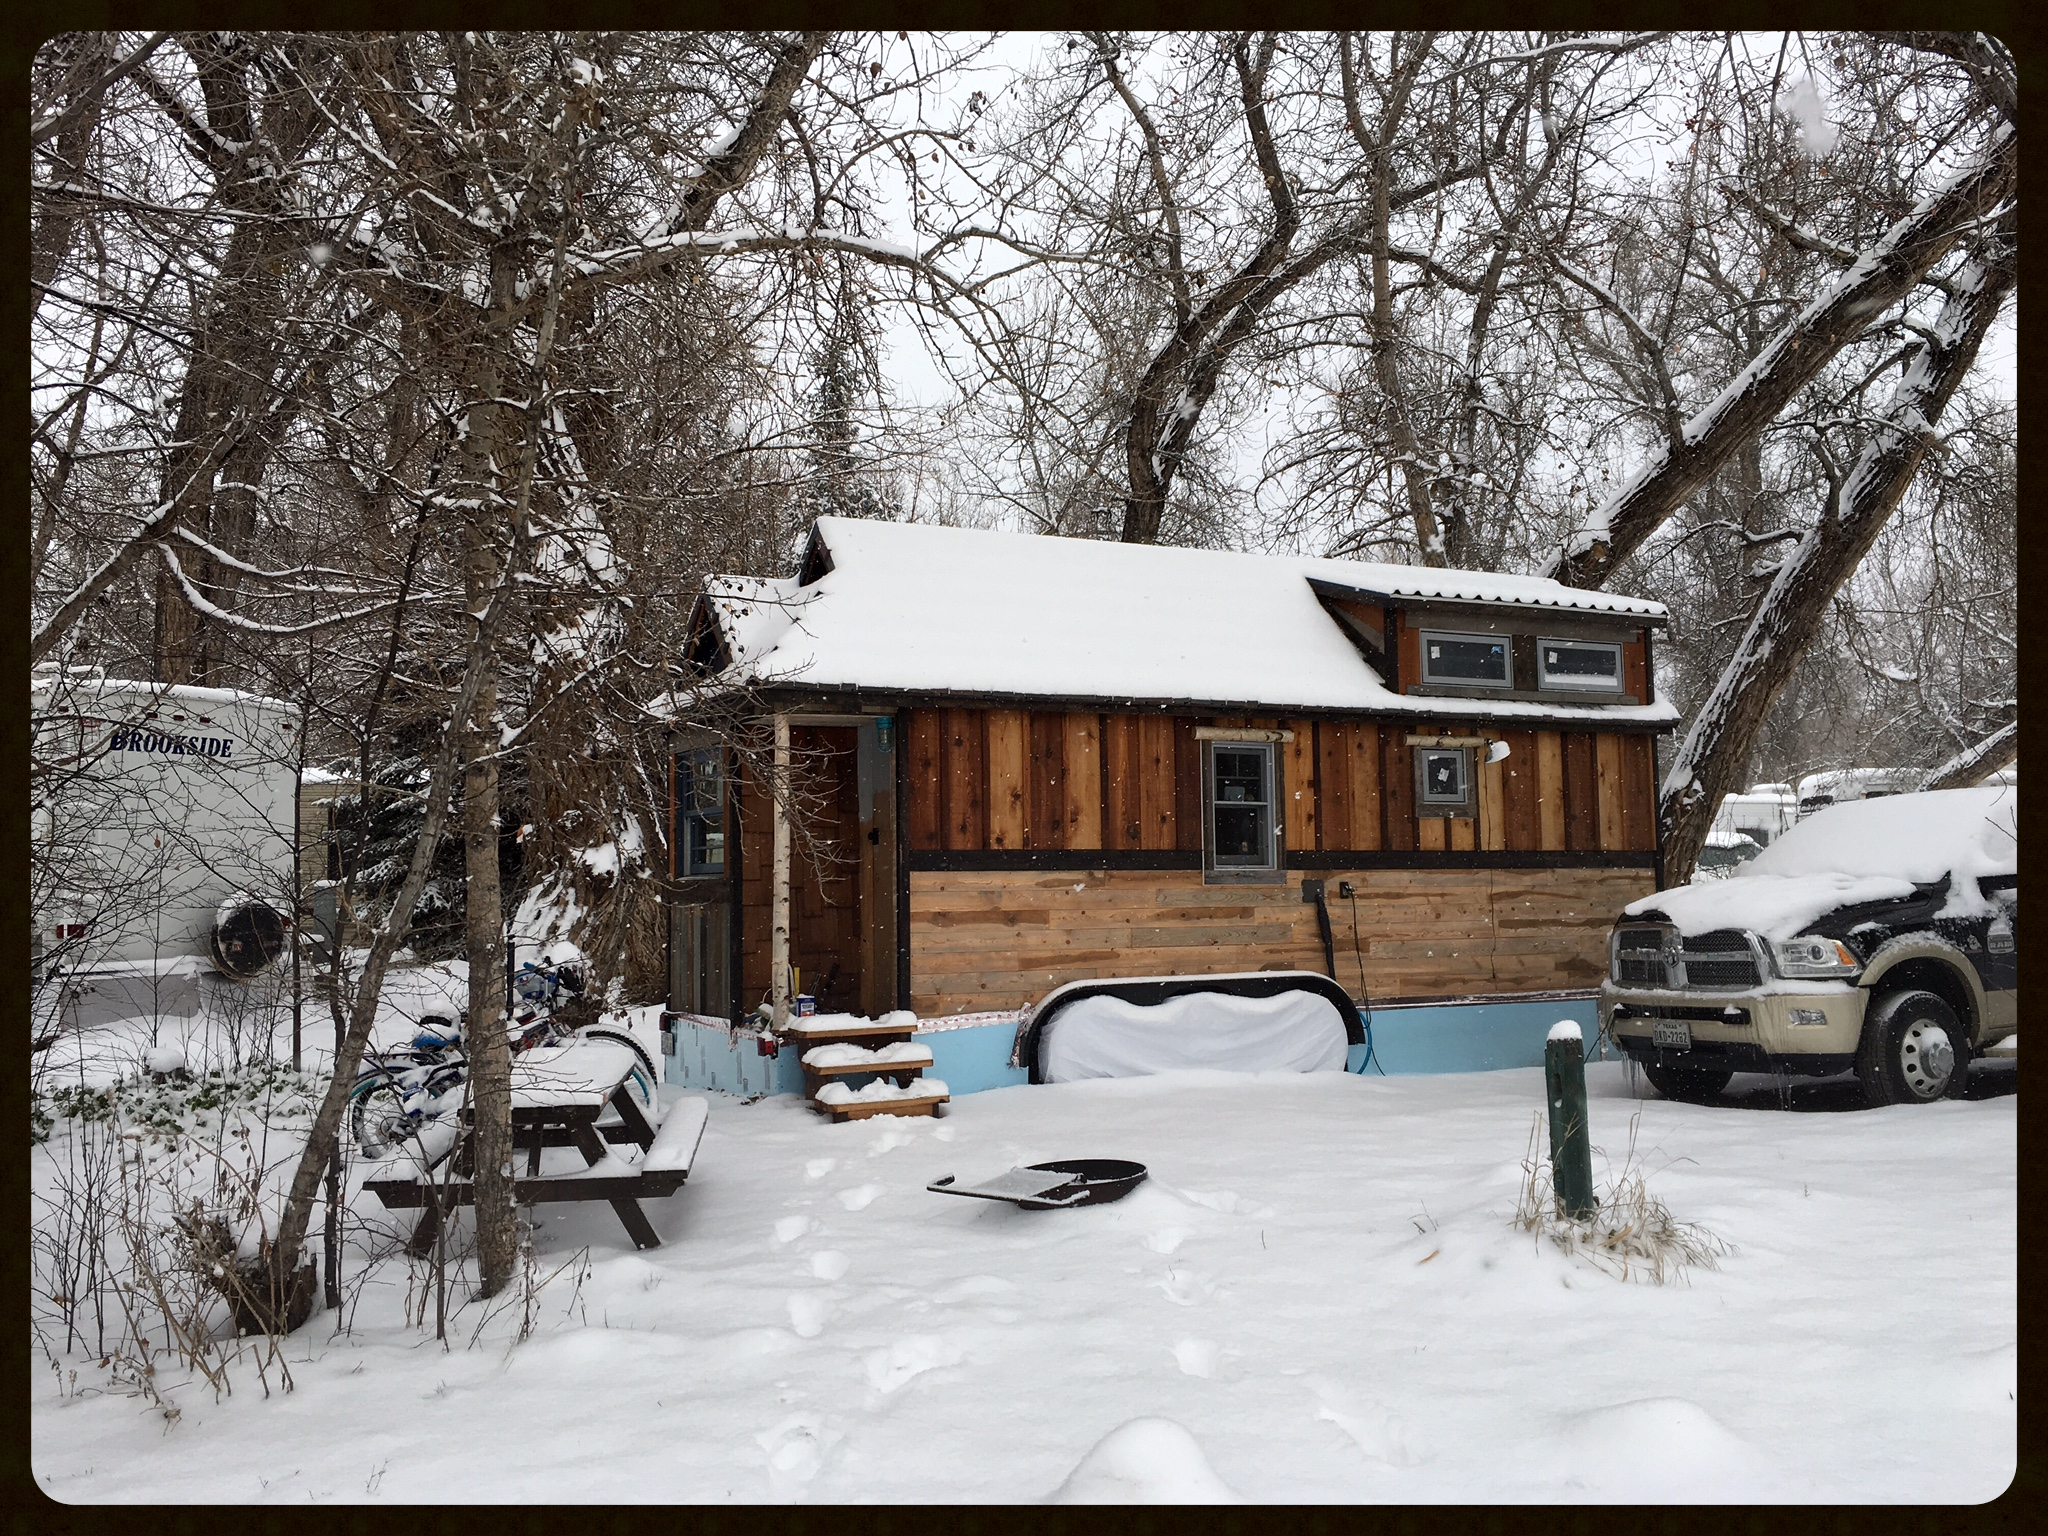 The Tiny House enjoying it's first heavy winter snow in Colorado on Thanksgiving Day. The rigid foam skirt might not be pretty, but it sure helps keep our toes toasty.